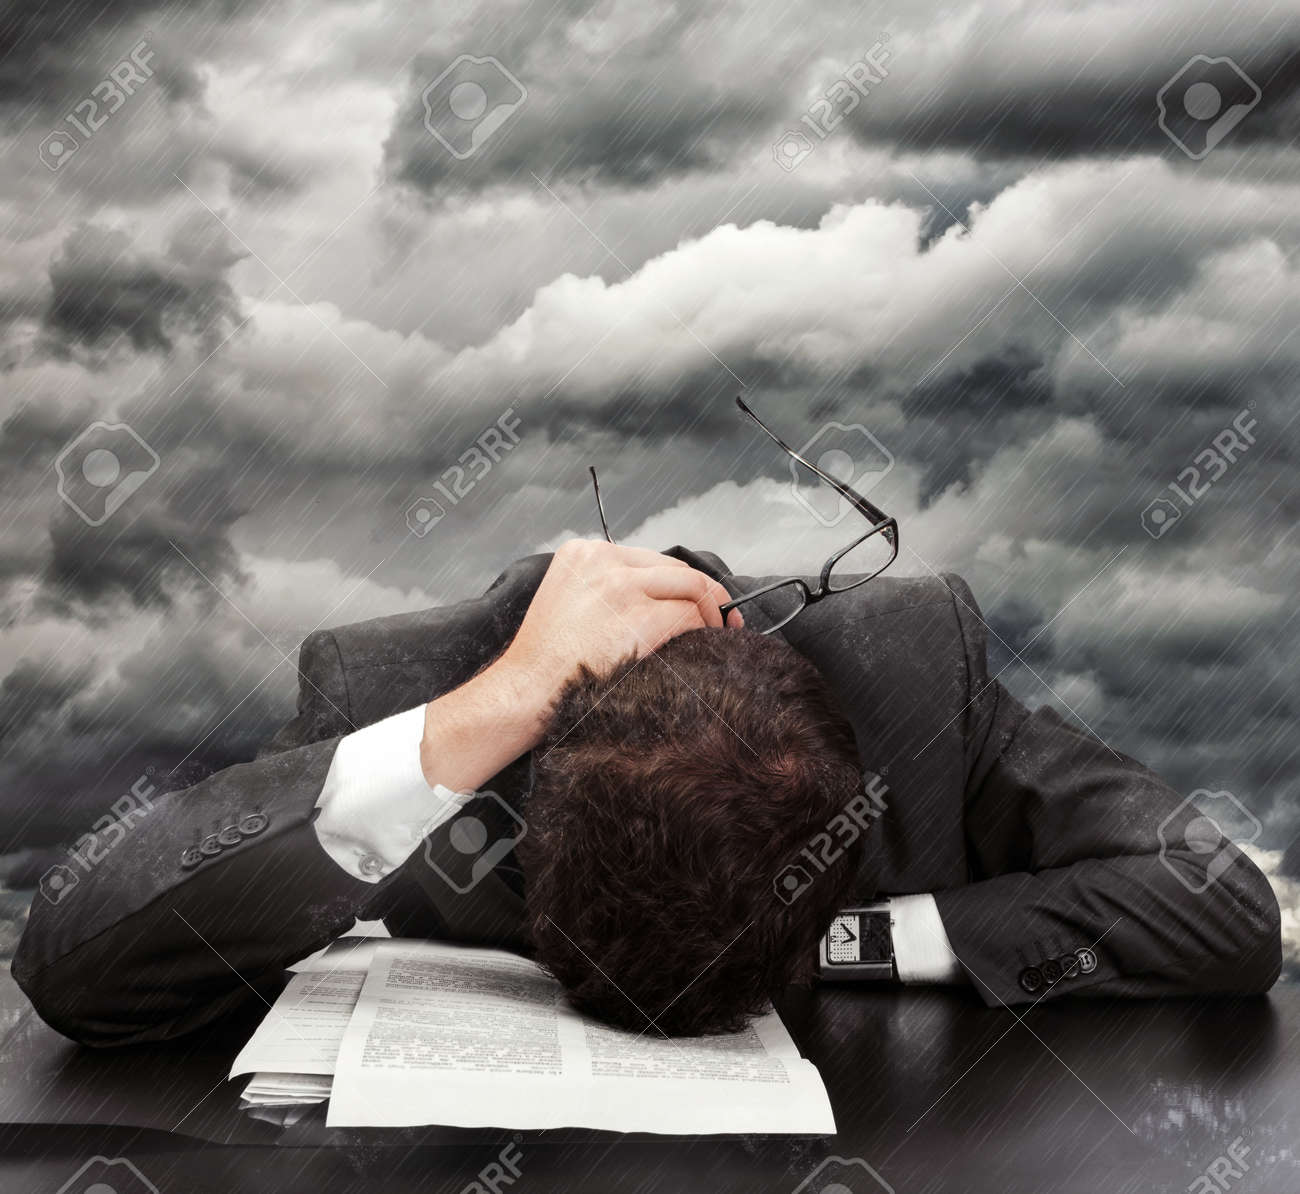 Concept about problems and frustration at work Stock Photo - 16951543